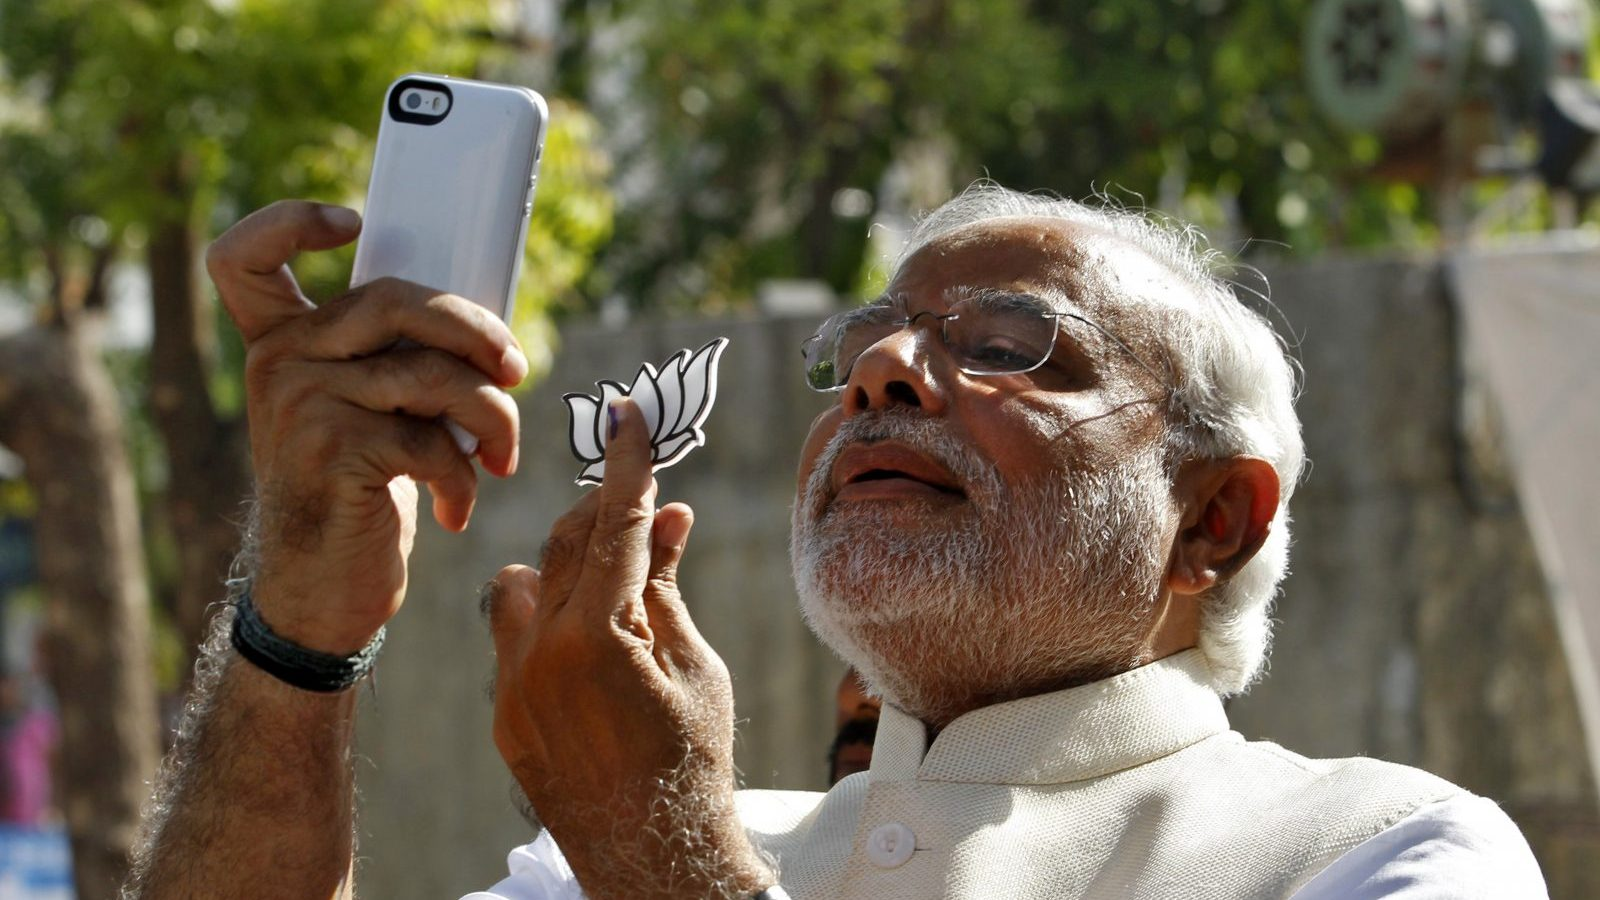 """Hindu nationalist Narendra Modi, the prime ministerial candidate for India's main opposition Bharatiya Janata Party (BJP), takes a """"selfie"""" with a mobile phone after casting his vote at a polling station during the seventh phase of India's general election in the western Indian city of Ahmedabad April 30, 2014. Around 815 million people have registered to vote in the world's biggest election - a number exceeding the population of Europe and a world record - and results of the mammoth exercise, which concludes on May 12, are due on May 16. REUTERS/Amit Dave (INDIA - Tags: POLITICS ELECTIONS TPX IMAGES OF THE DAY) - GM1EA4U11JO01"""